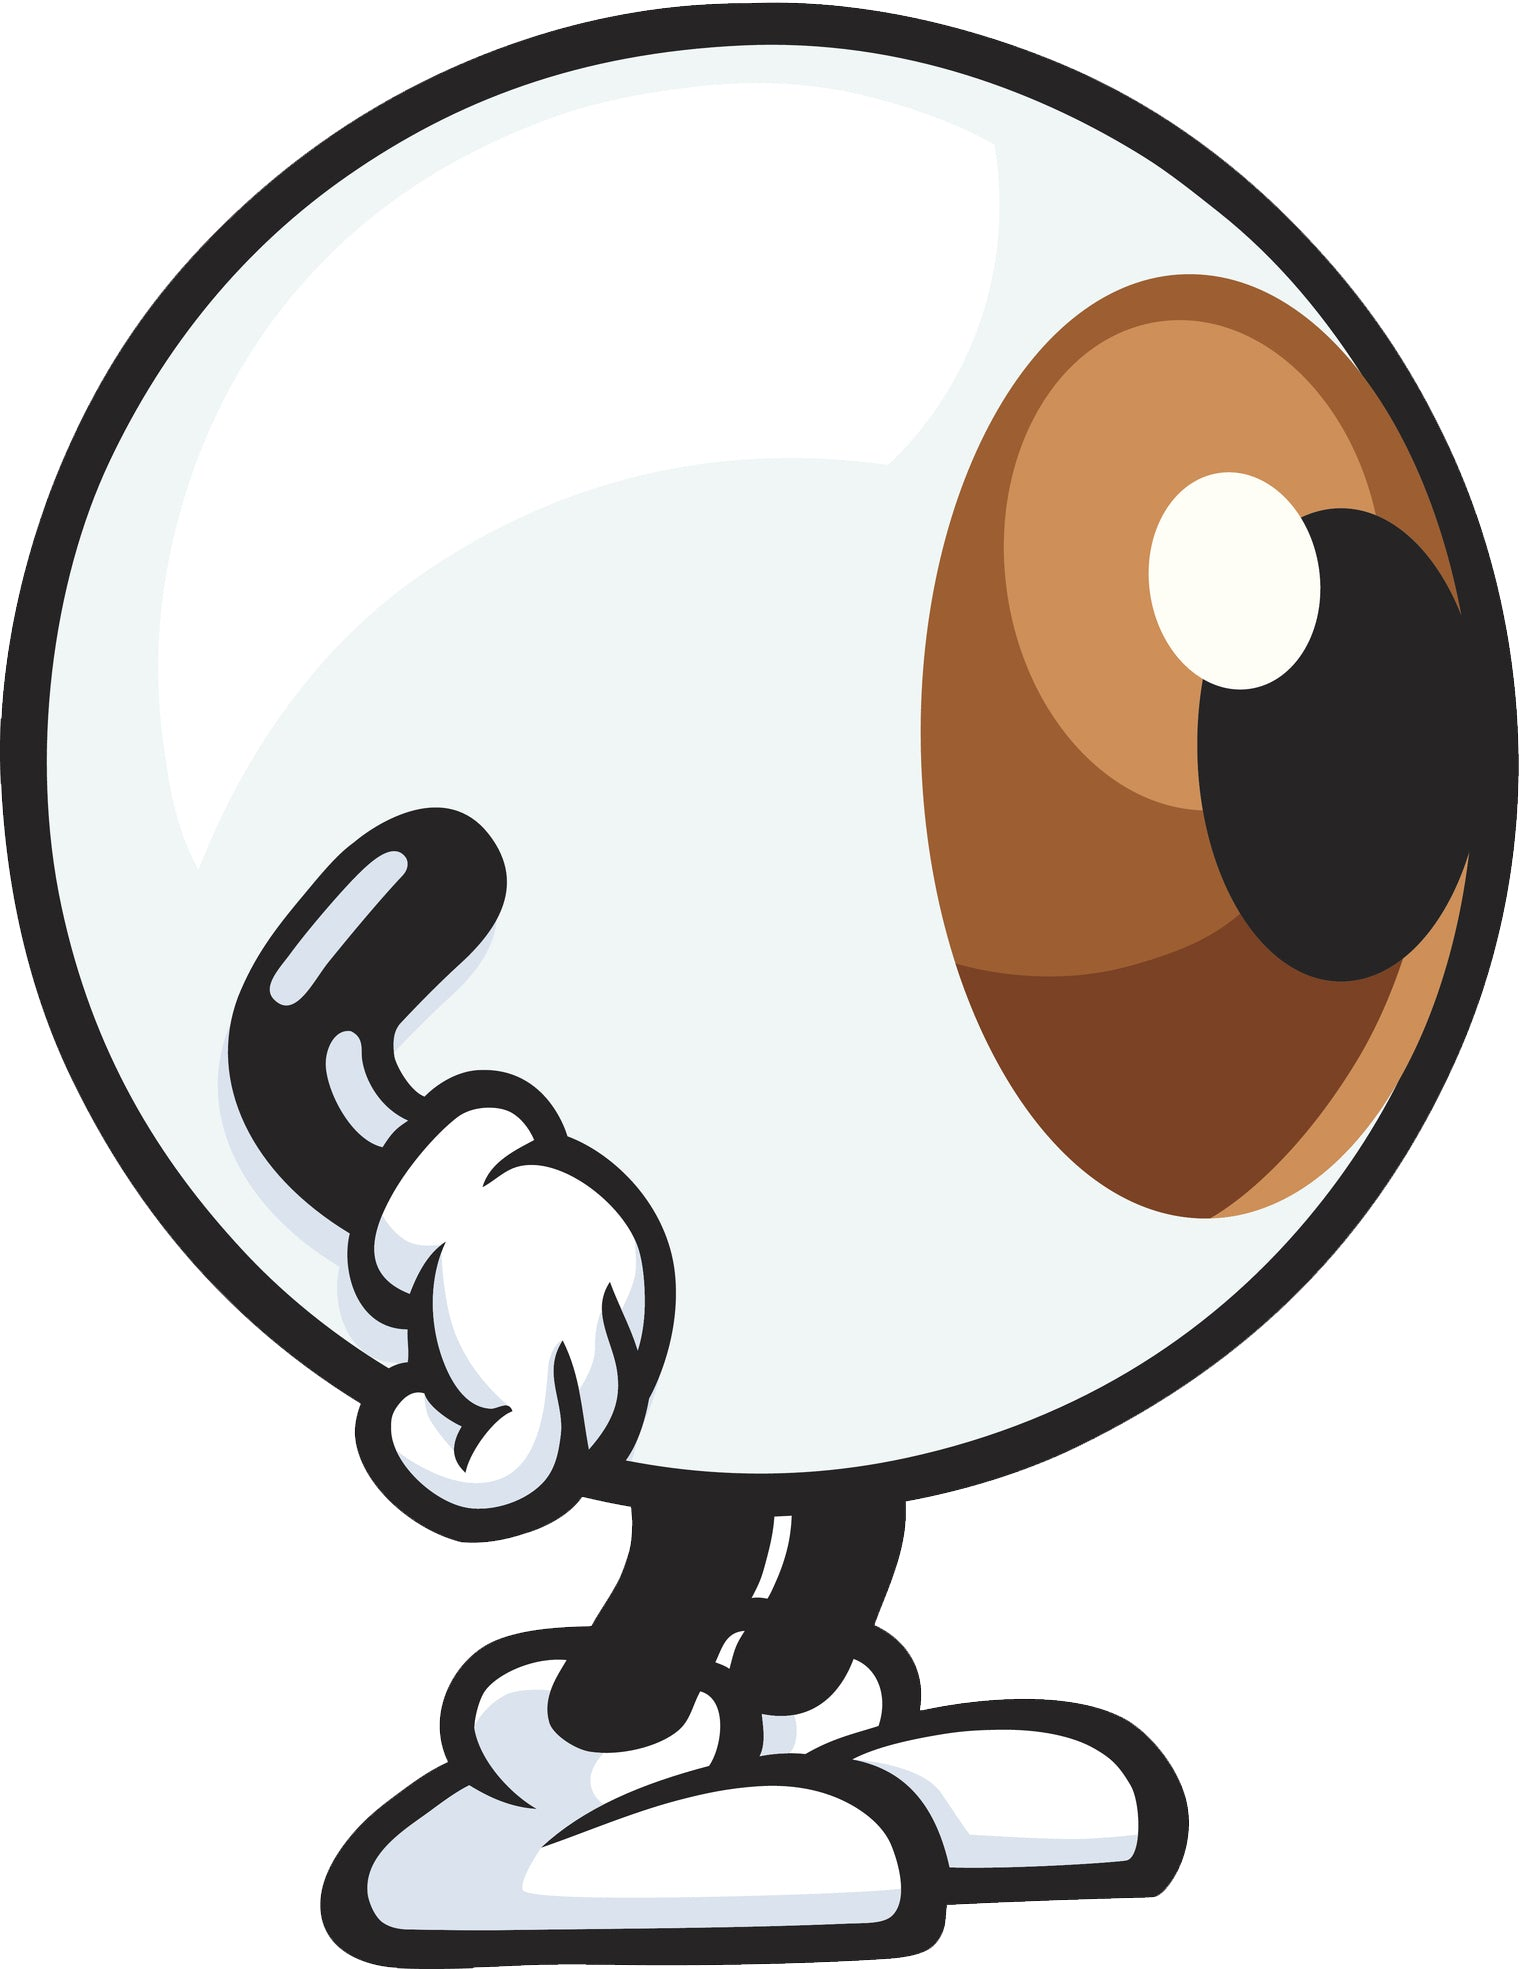 Cute Big Eyeball with Arms and Legs Monster Vinyl Decal Sticker